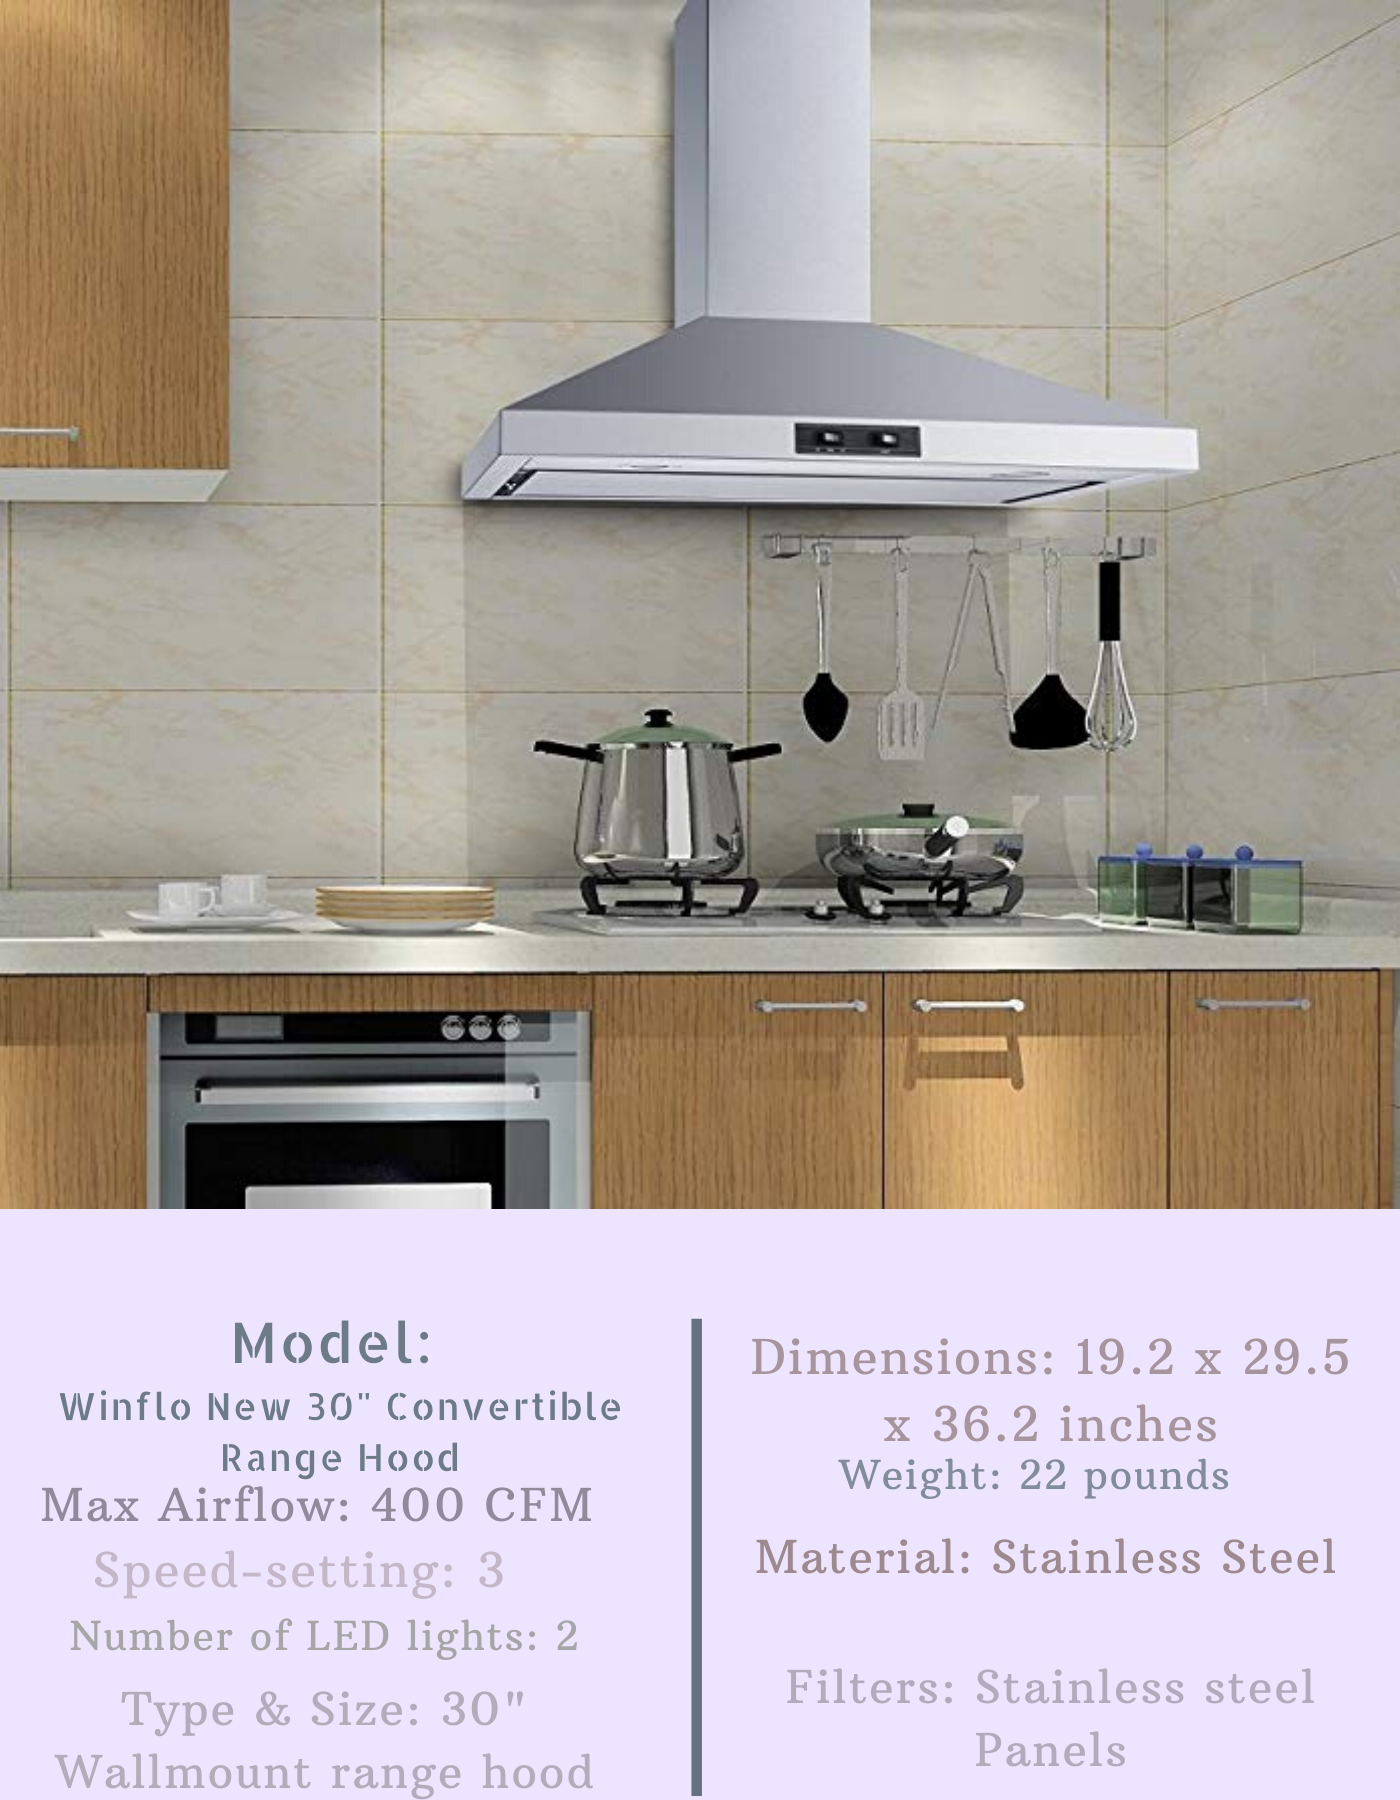 12 Best Wall Mount Range Hood Reviews And Buying Guide For 2020 In 2020 Wall Mount Range Hood Range Hood Cool Walls